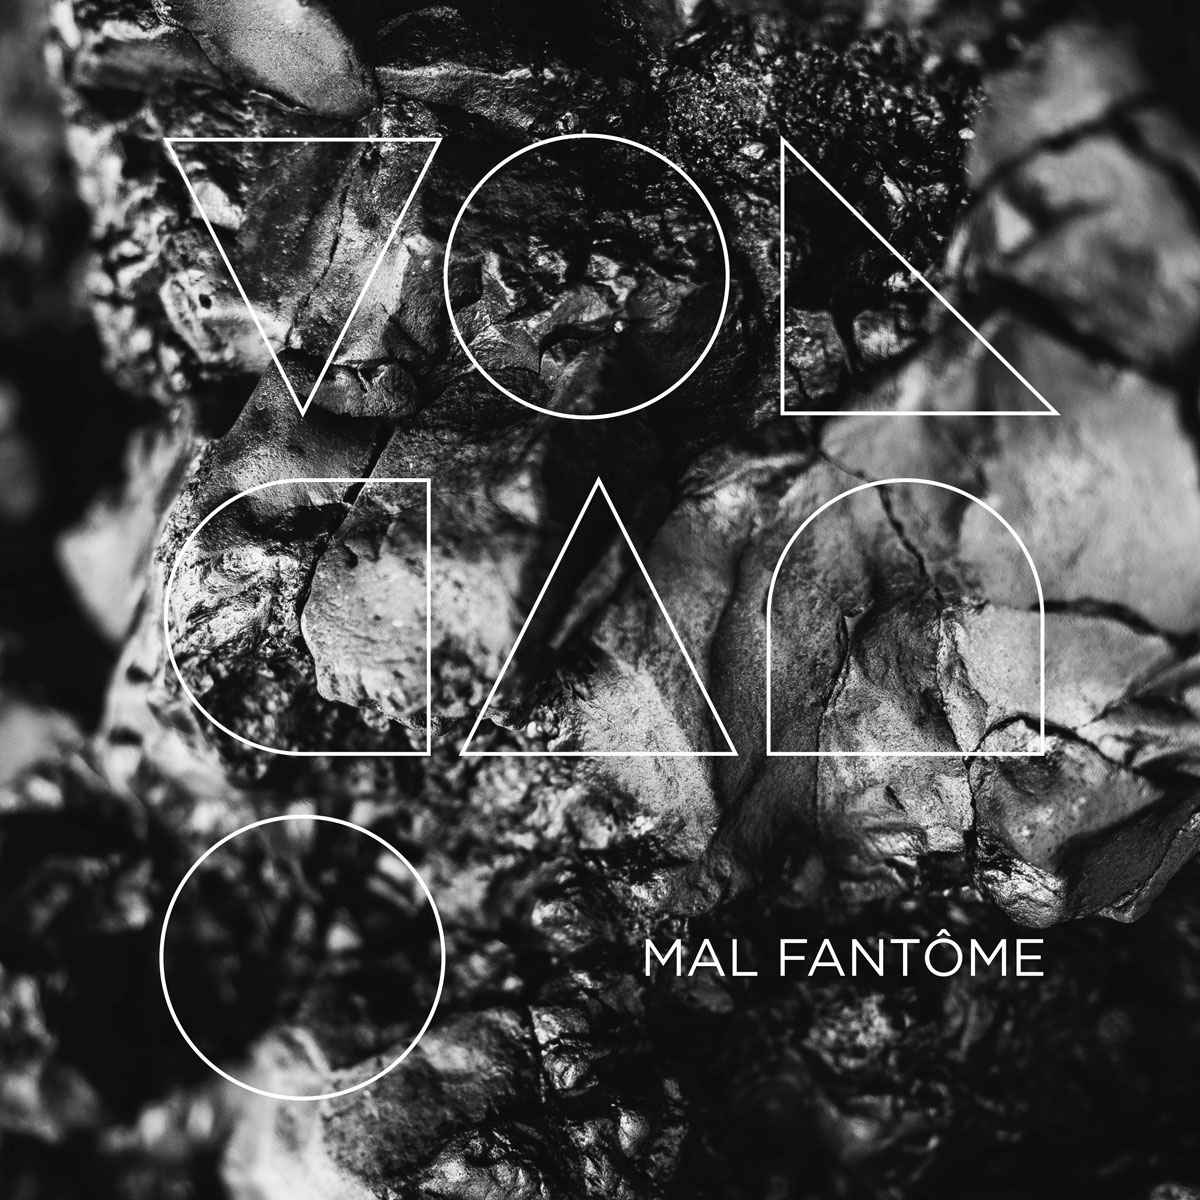 Mal Fantôme | Volcano - Available on Spotify, Apple Music, Deezer, YouTube, etc.